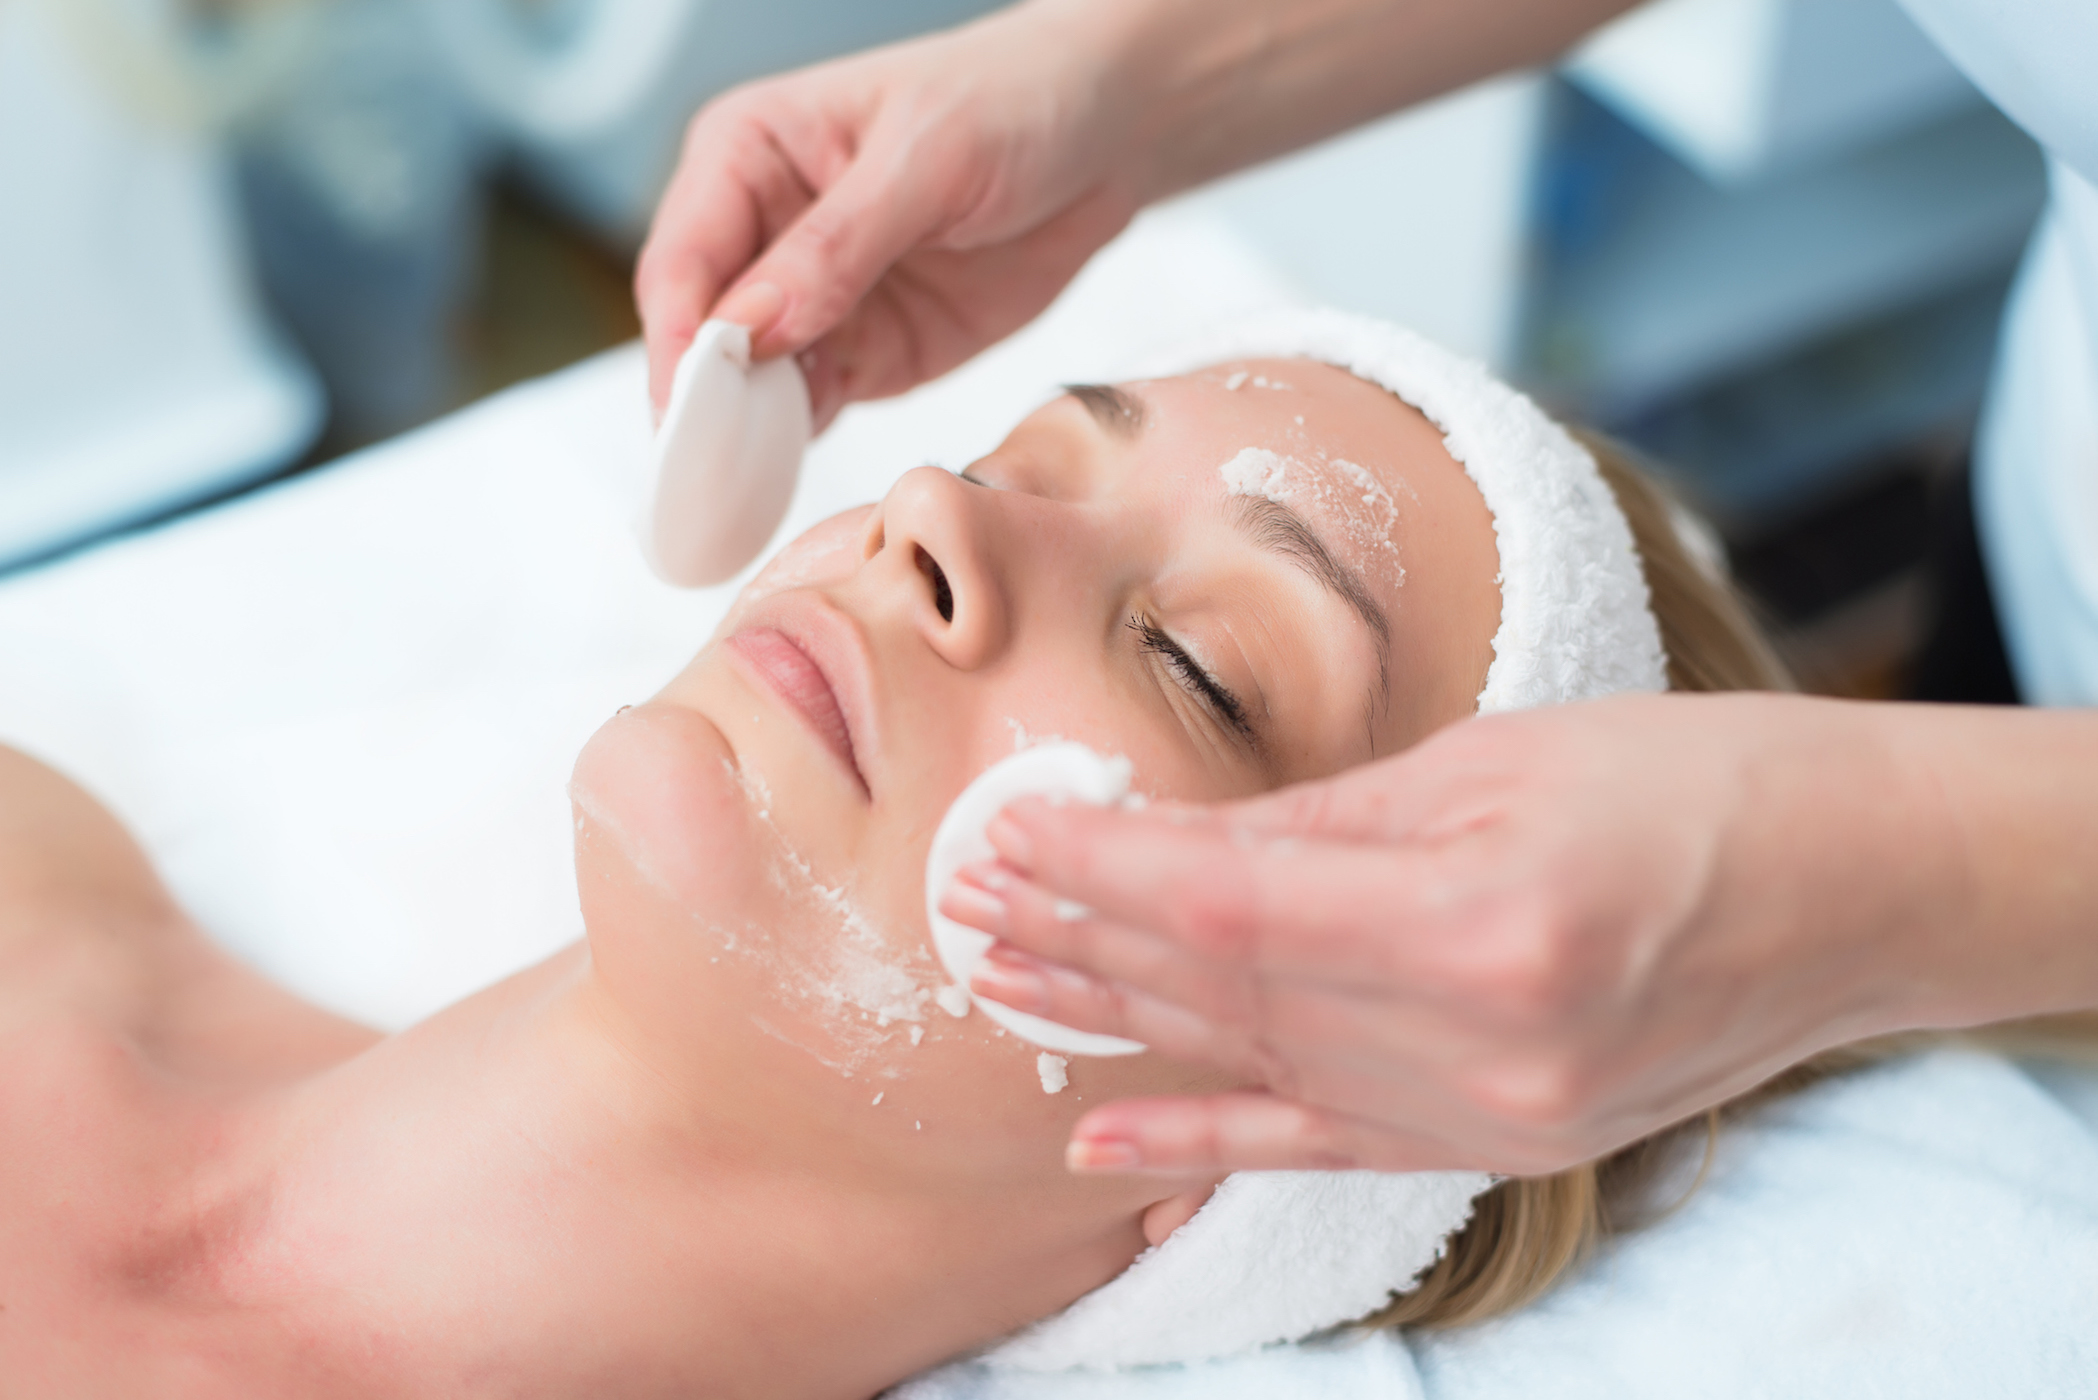 The Best Anti-Aging Treatments at the Dermatologist's Office